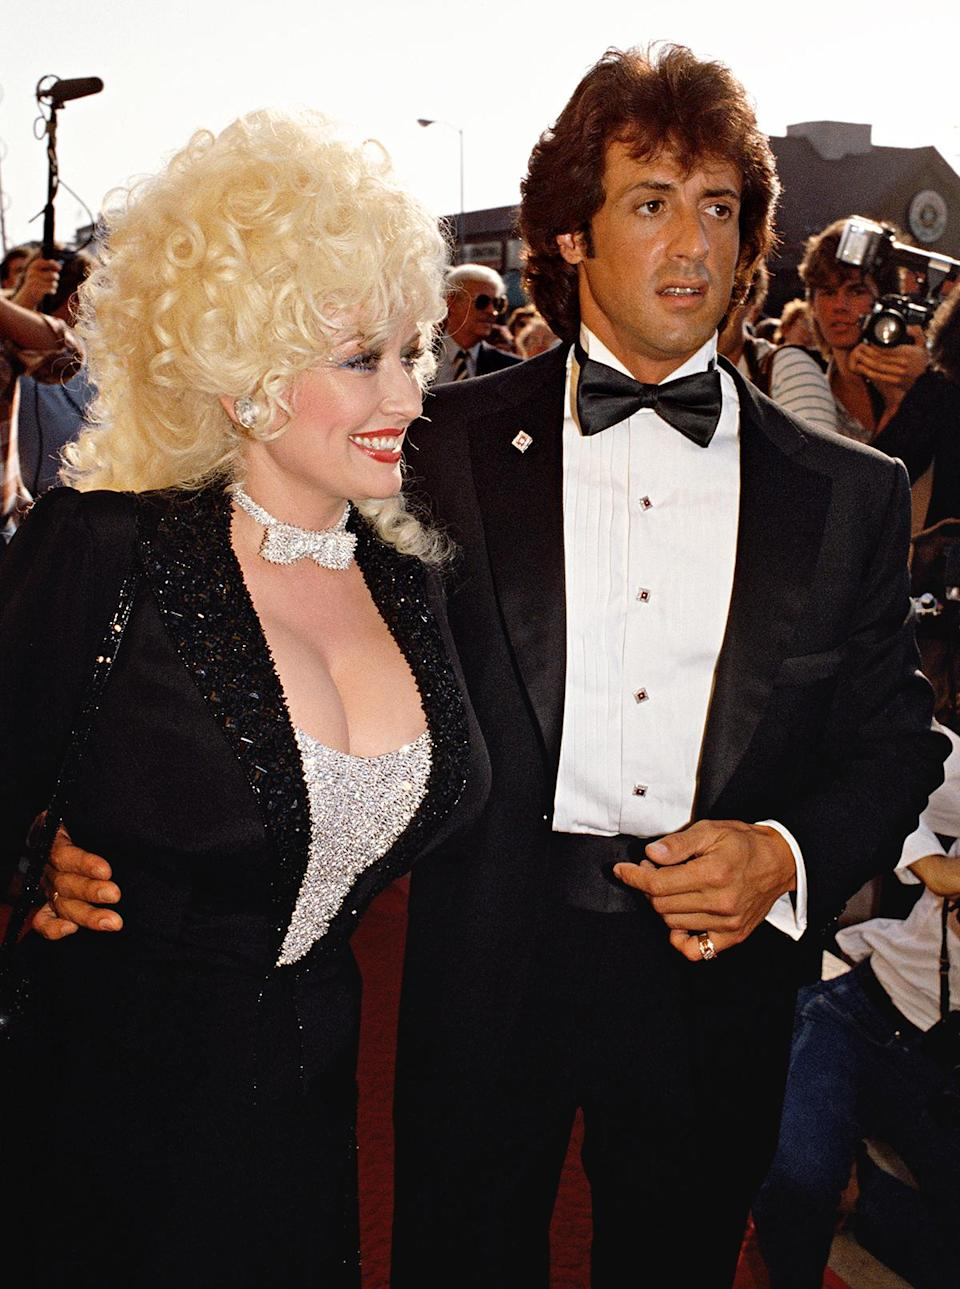 """<p>She knew costar Sylvester Stallone would be """"dressed to the nines"""" for the premiere of <em>Rhinestone Cowboy </em>in 1984<em>.</em> """"So I tried to look my Dolly best,"""" she said. And she succeeded in this crystal bustier top, matching bow-tie choker and embellished tuxedo jacket ensemble. </p>"""